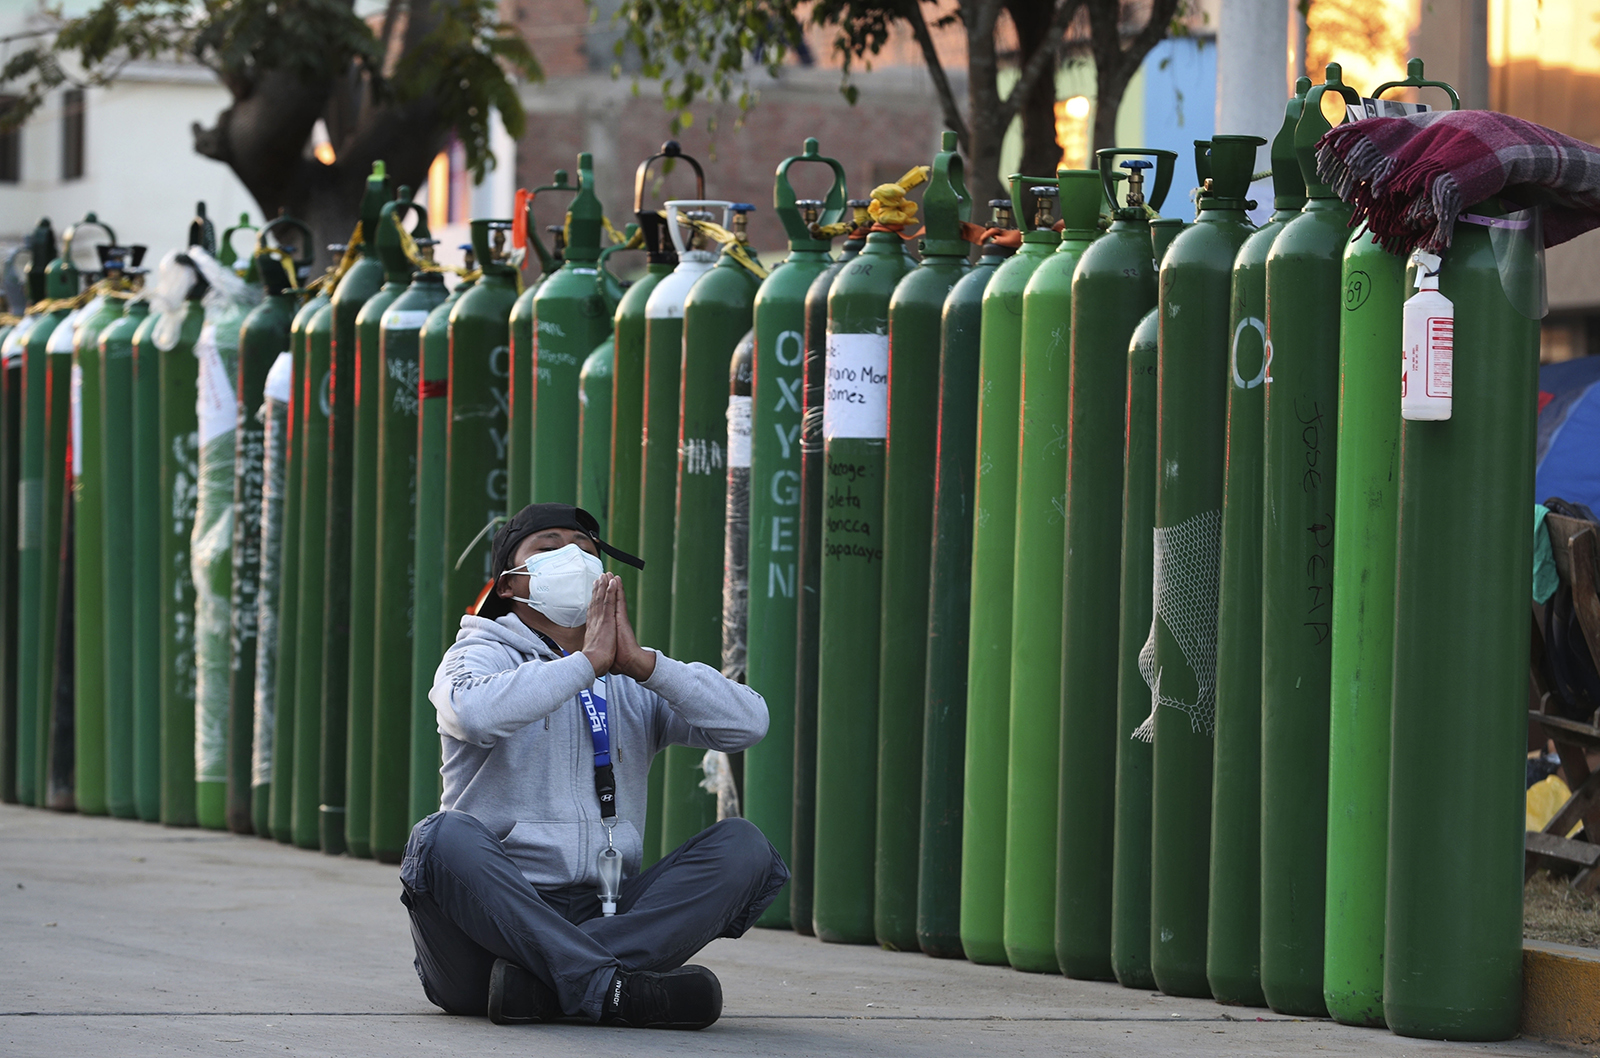 Alejandro Ccasa prays after waiting three days next to empty oxygen tanks outside a refill shop, before it opens, where he is the first in line in Callao, Peru, early Feb. 2, 2021. Ccasa was waiting to get oxygen for his uncle, who has COVID-19. His uncle died later that day. (AP Photo/Martin Mejia)